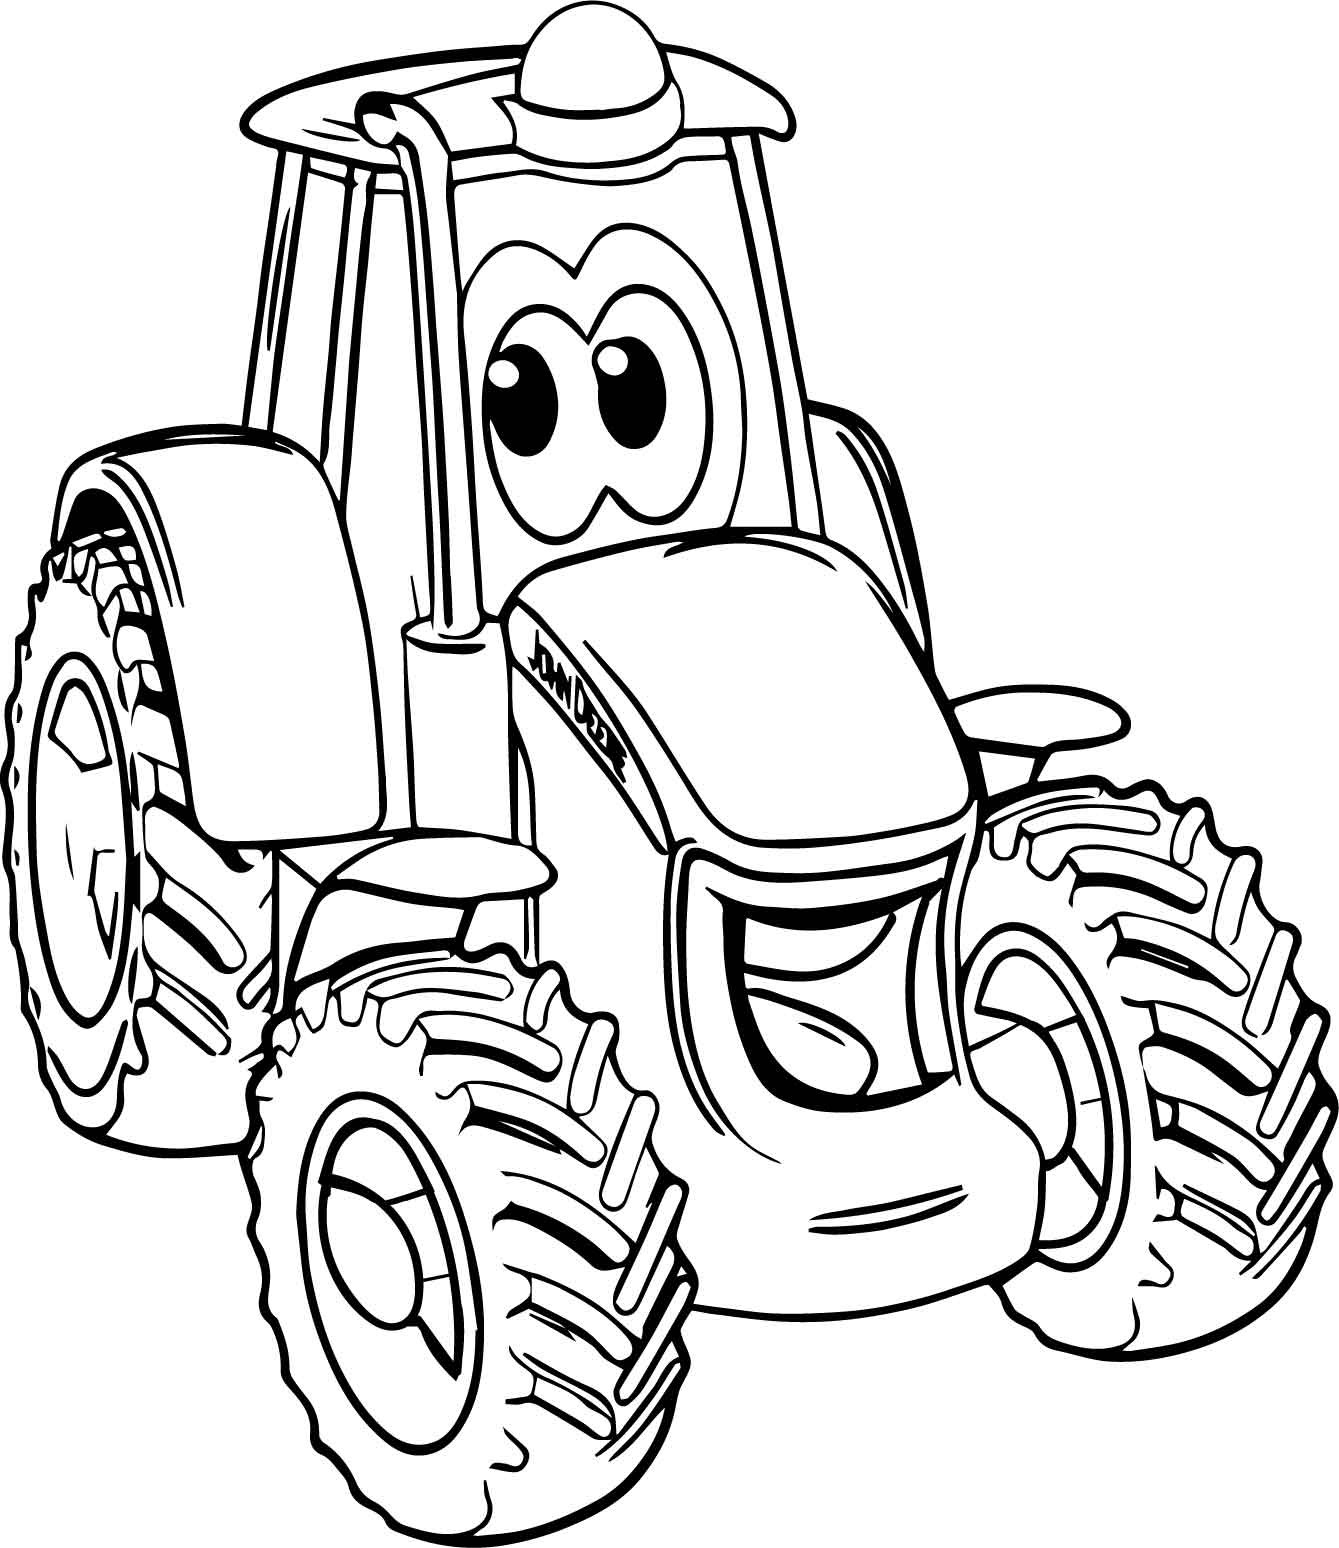 tractor coloring to print tractor coloring pages at getdrawings free download print tractor to coloring